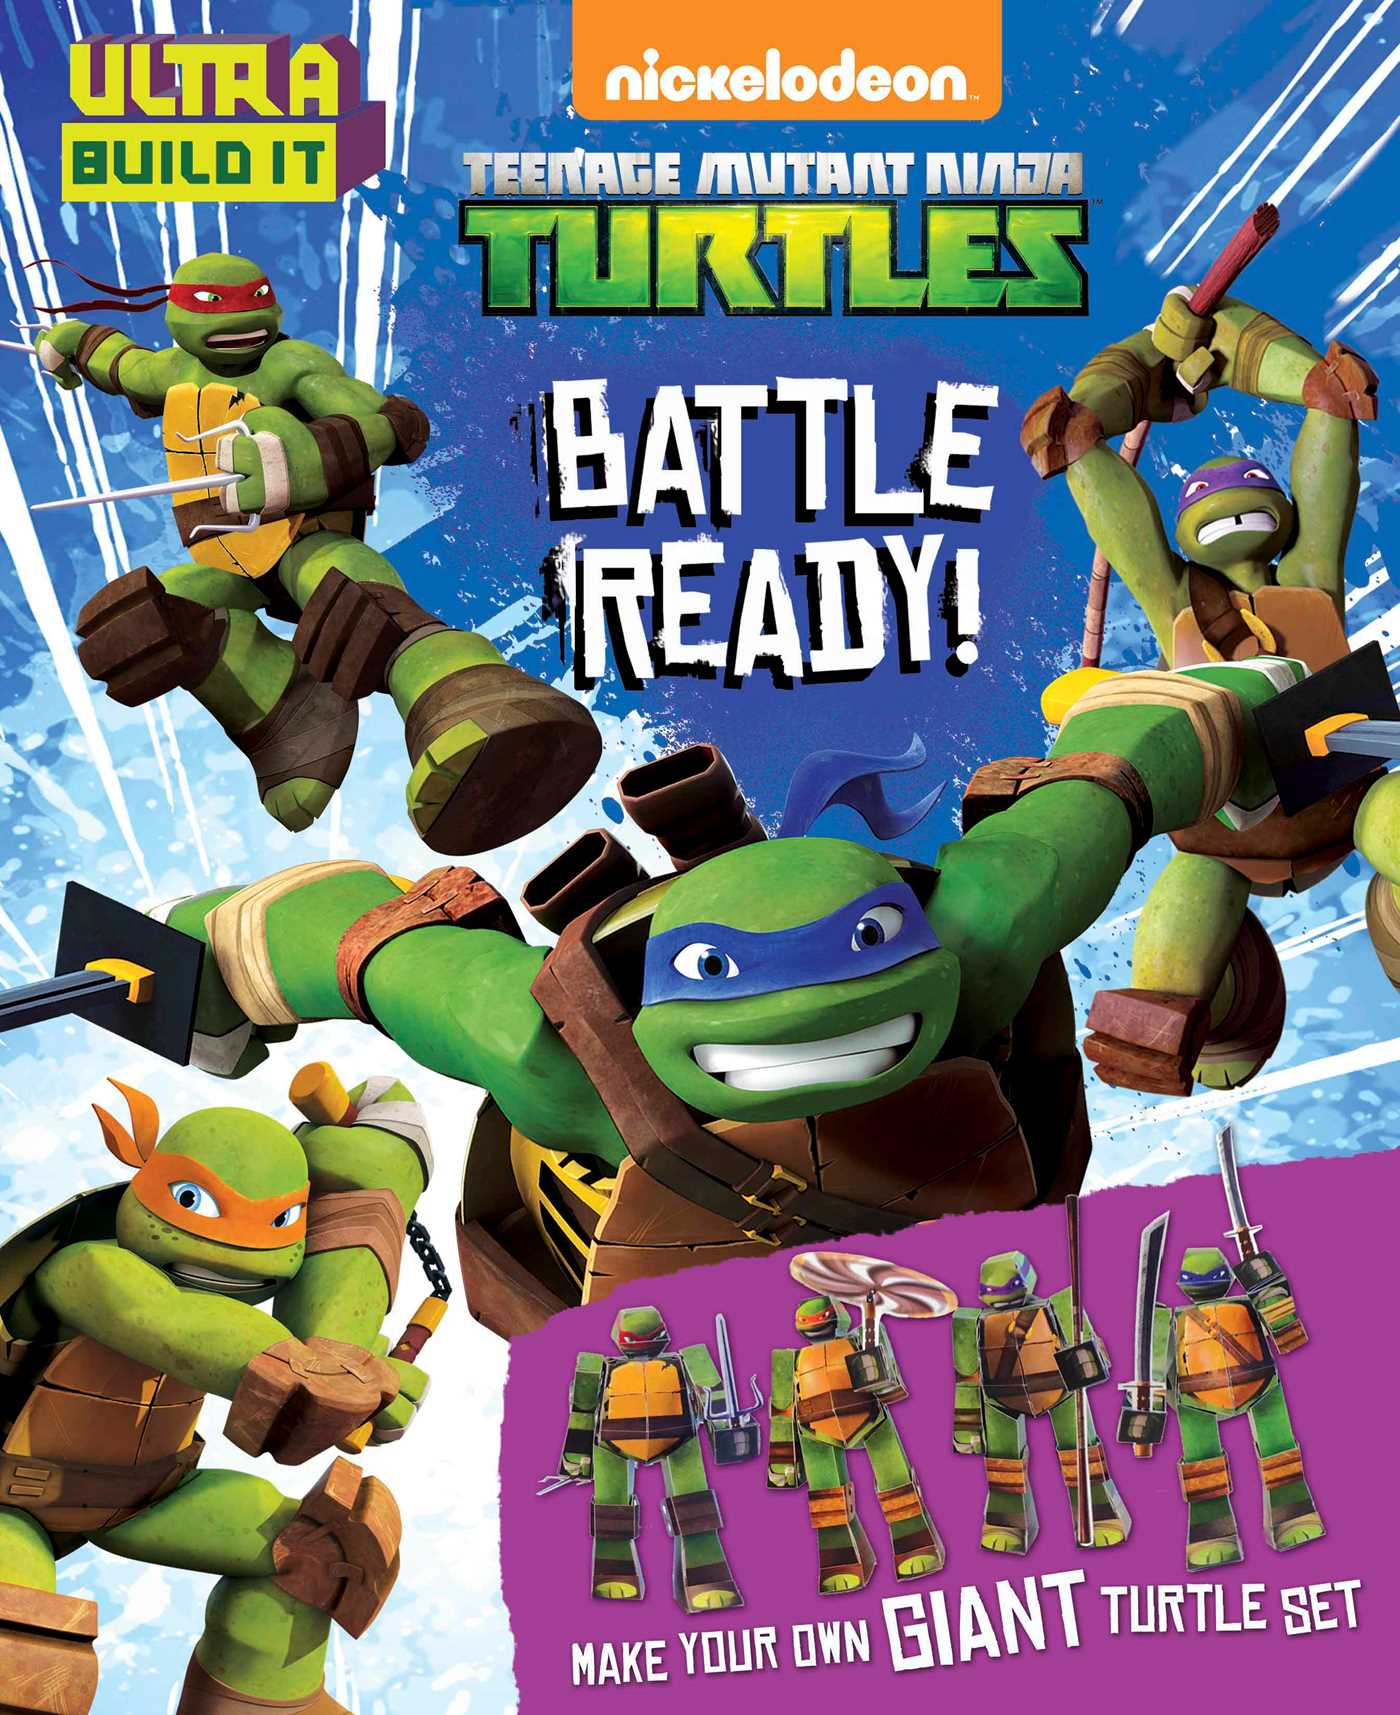 Teenage-mutant-ninja-turtles-battle-ready!-9780794433260_hr